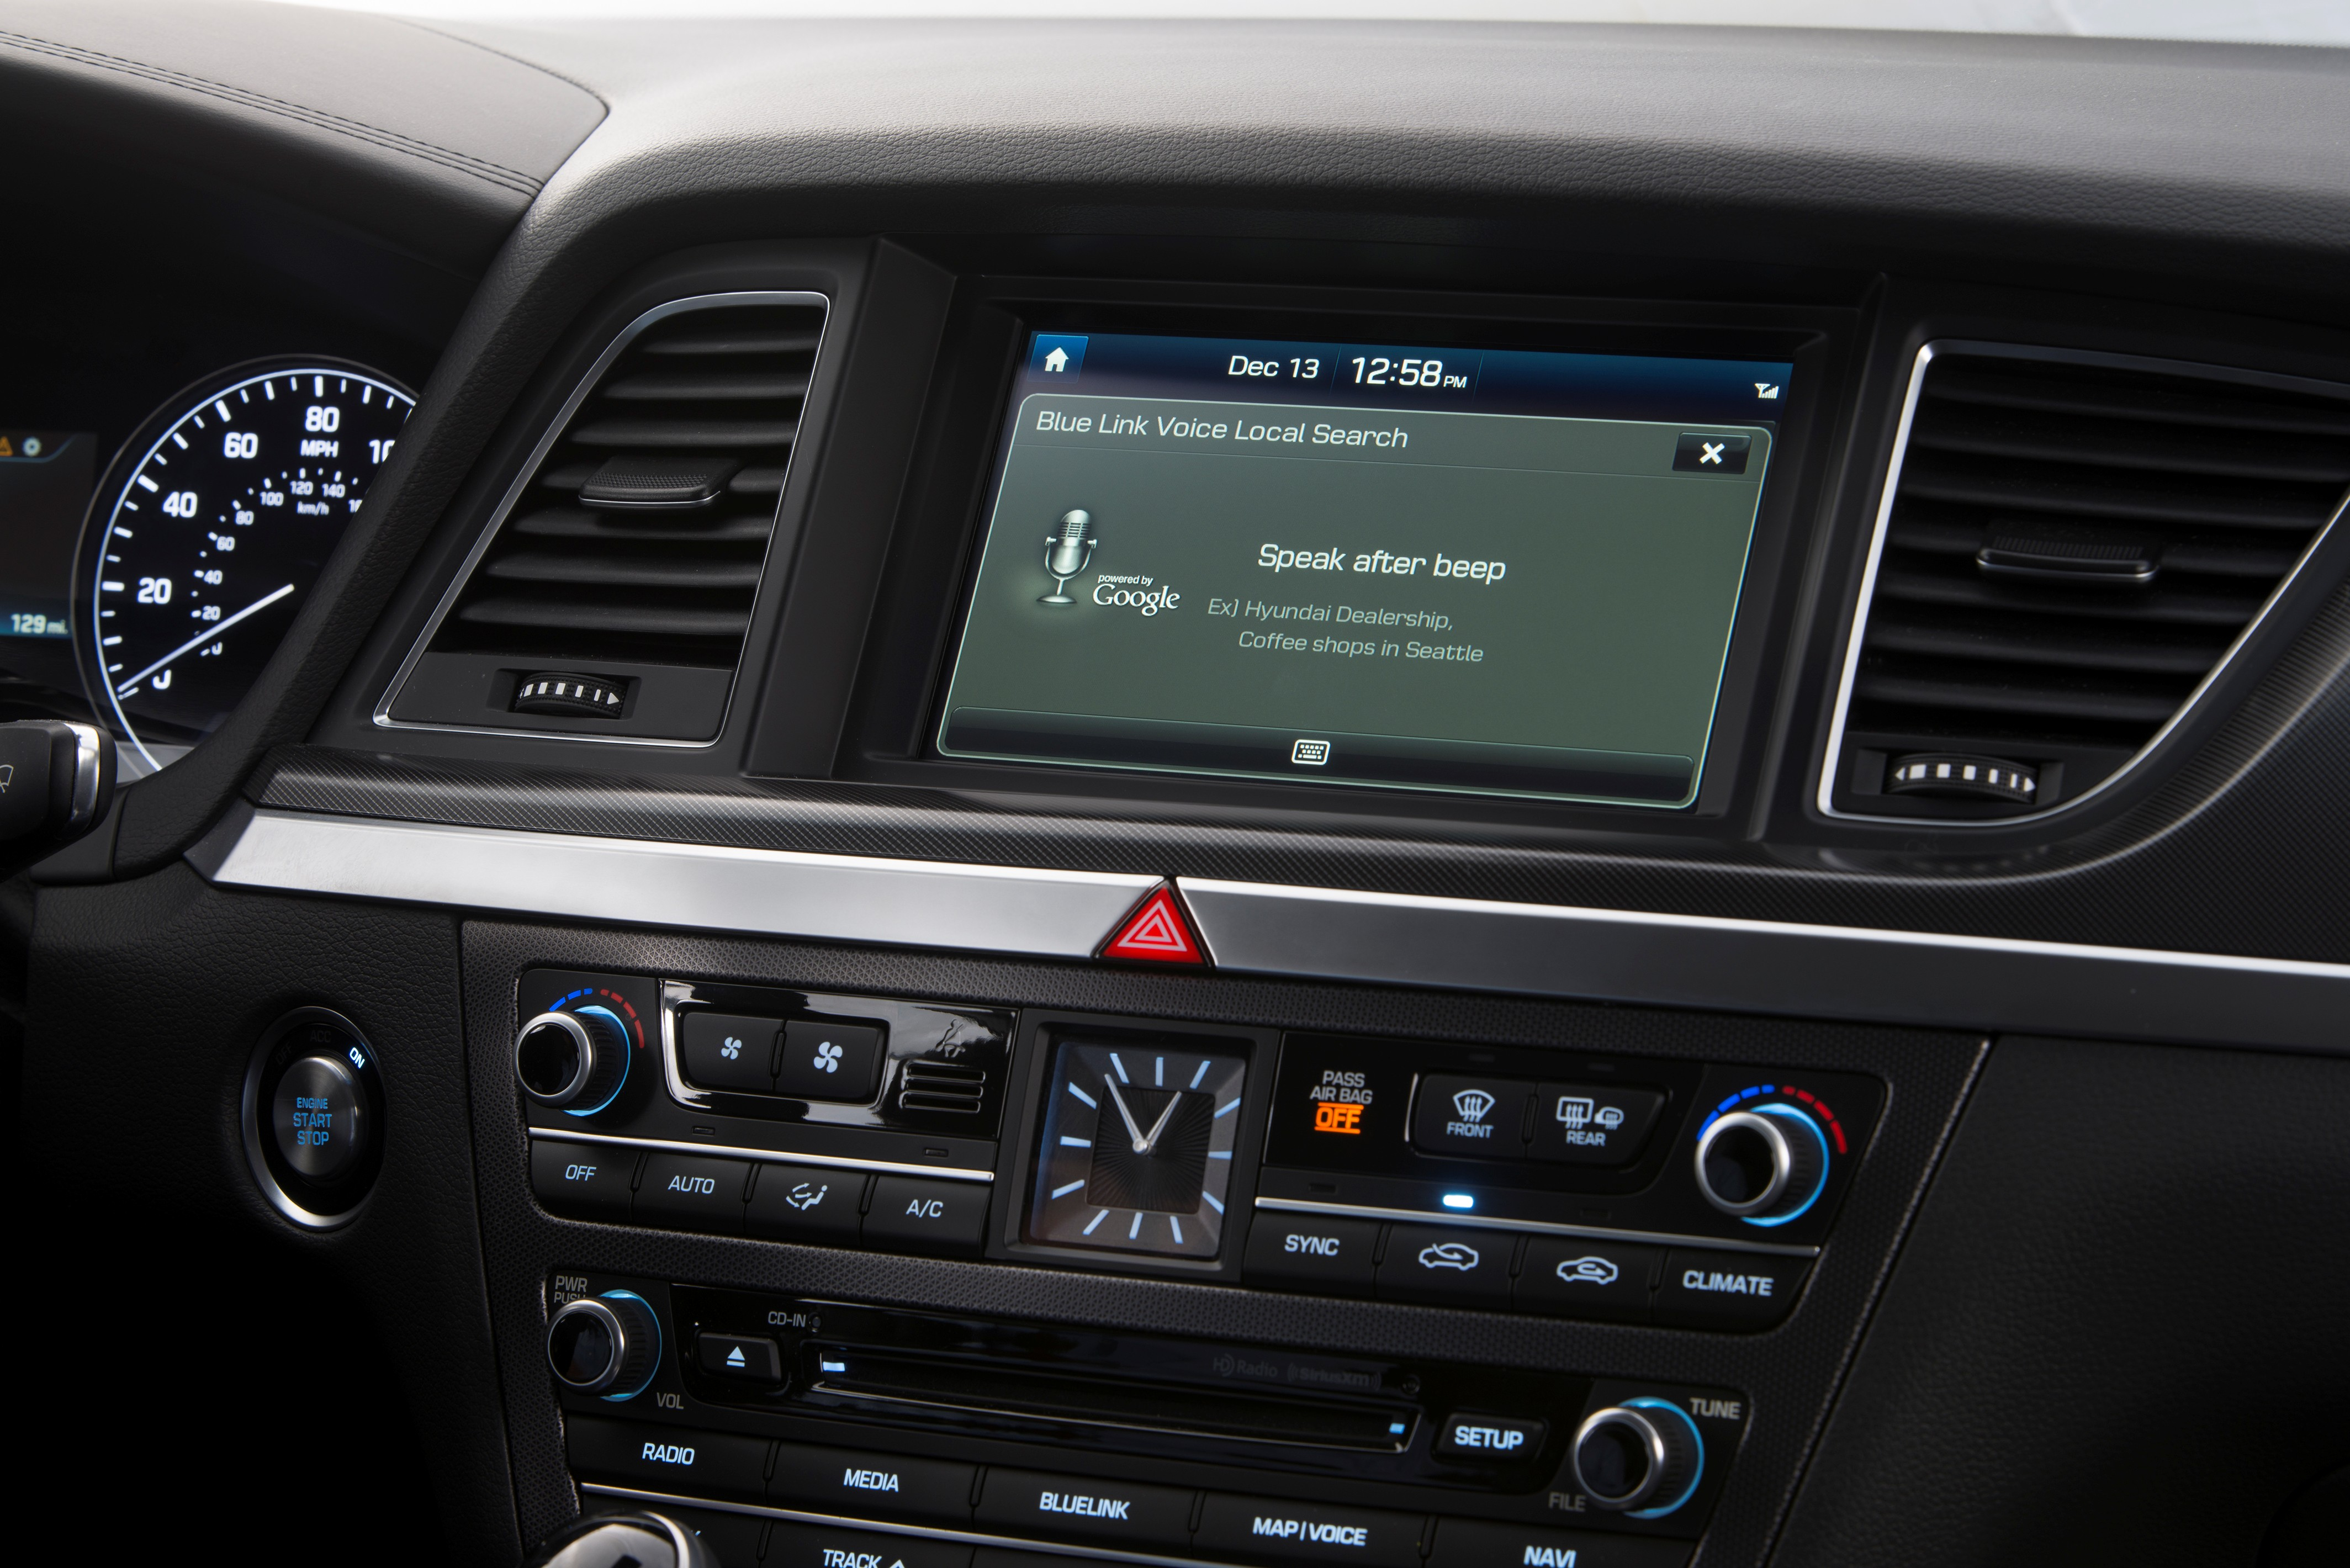 Hyundai, working with the Open Automotive Alliance (OAA) is making Android Auto available to drivers. (image credit: Hyundai Motor America)